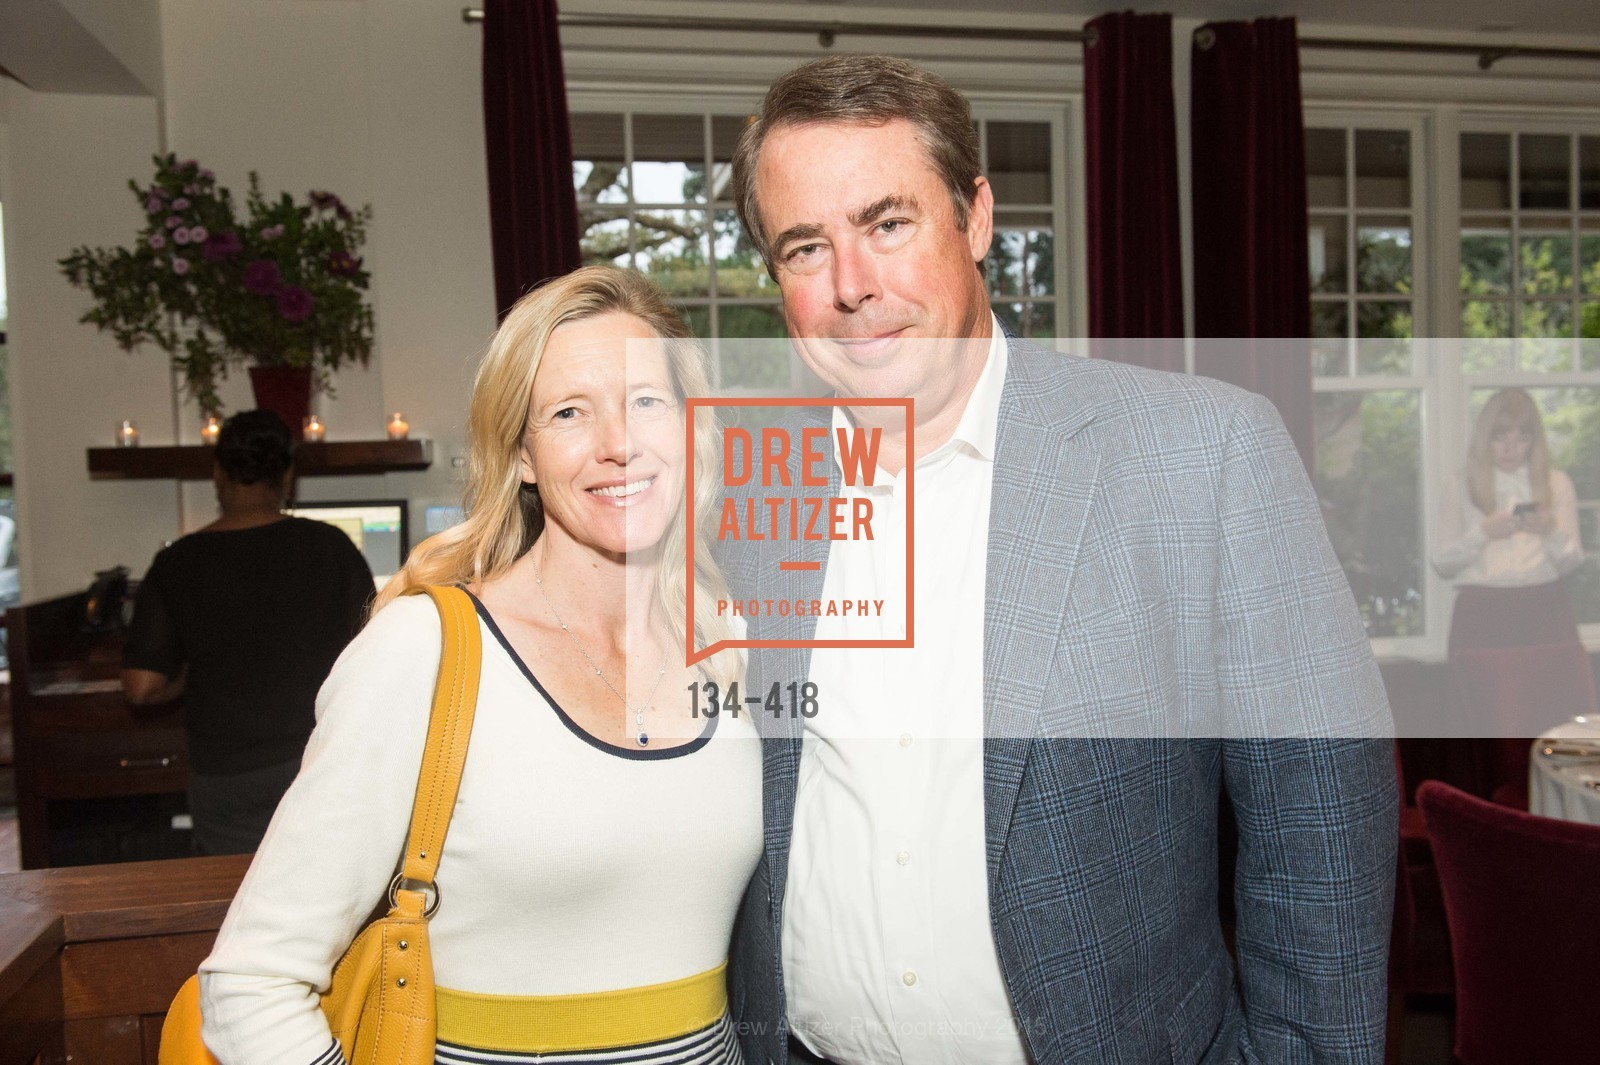 Catarina Powers, Matthew Powers, Artsy and Sotheby's Village Pub Dinner, Village Pub, October 27th, 2015,Drew Altizer, Drew Altizer Photography, full-service agency, private events, San Francisco photographer, photographer california